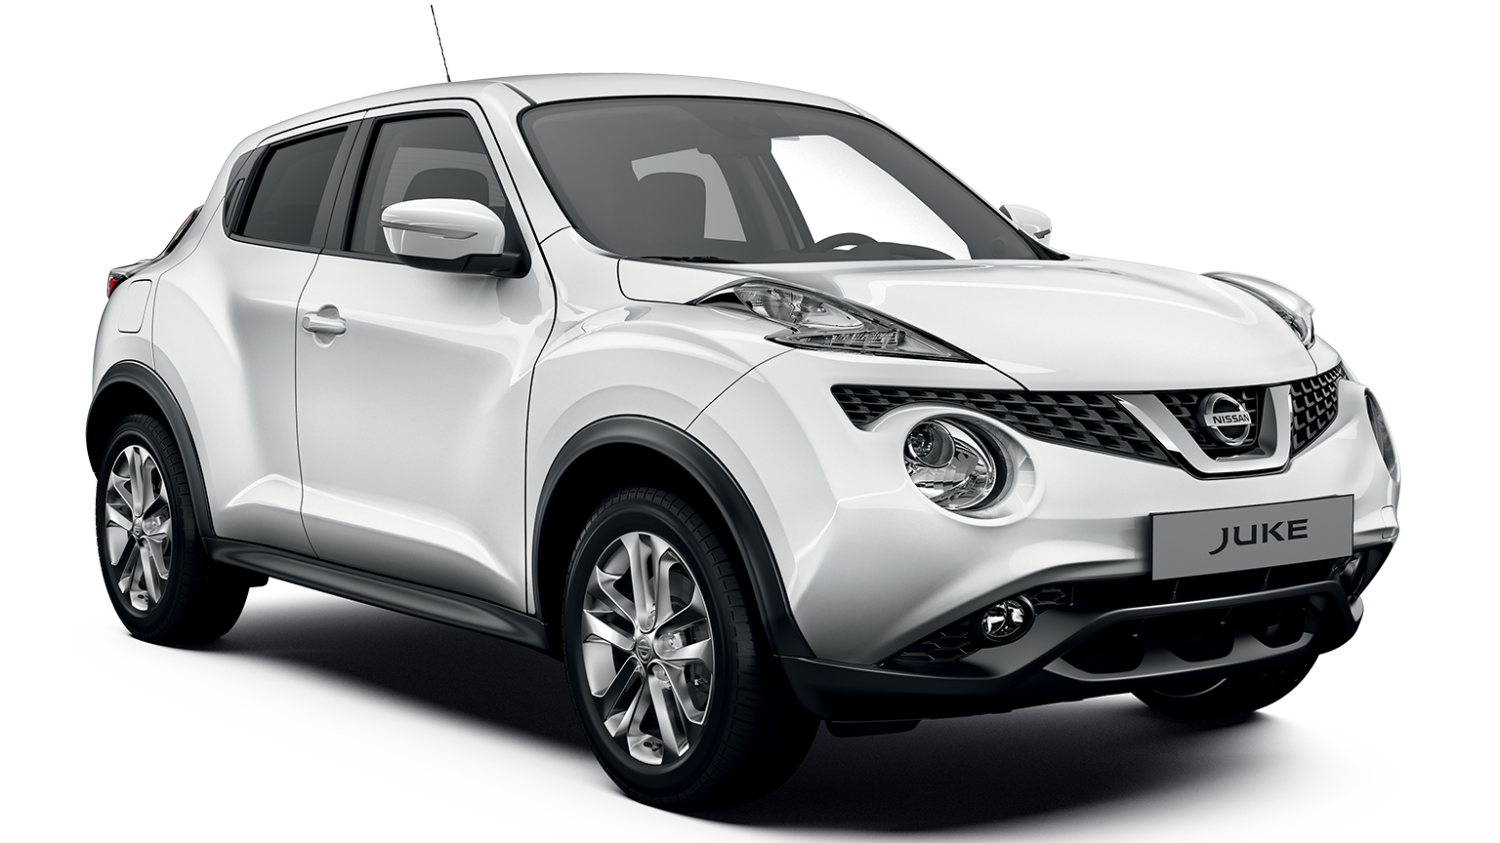 Nissan Juke coming this Summer